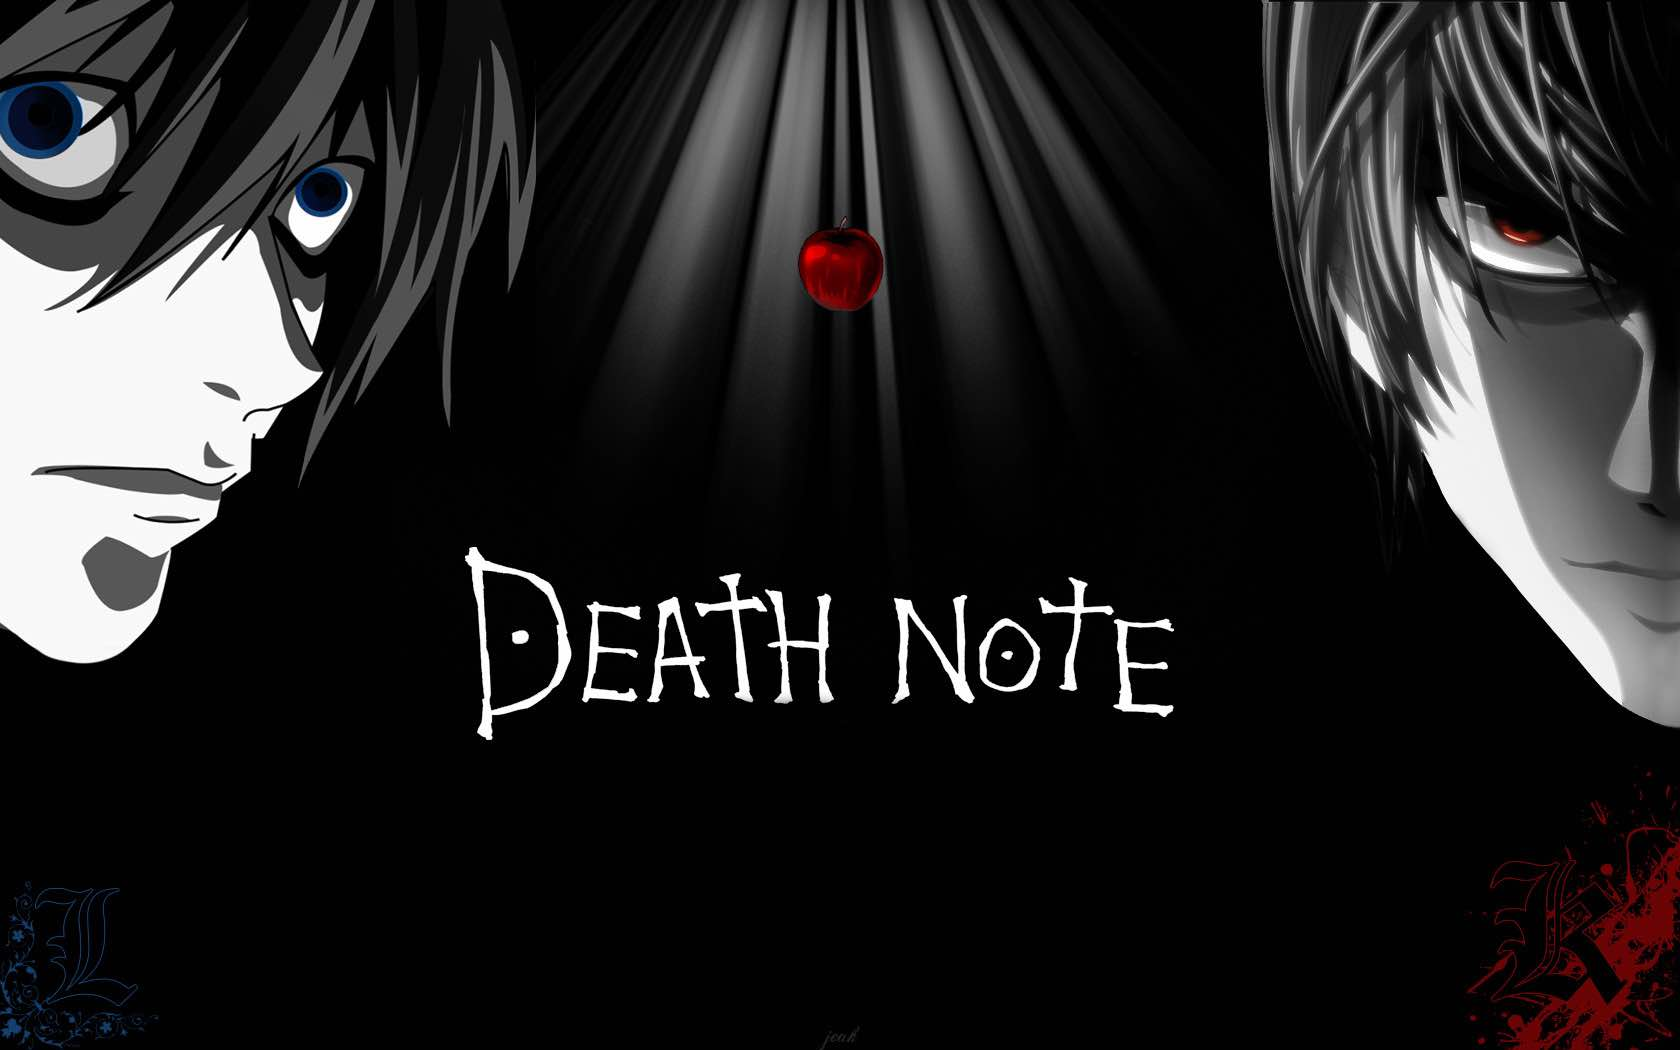 image from Death Note – A good manga for practicing rational thinking